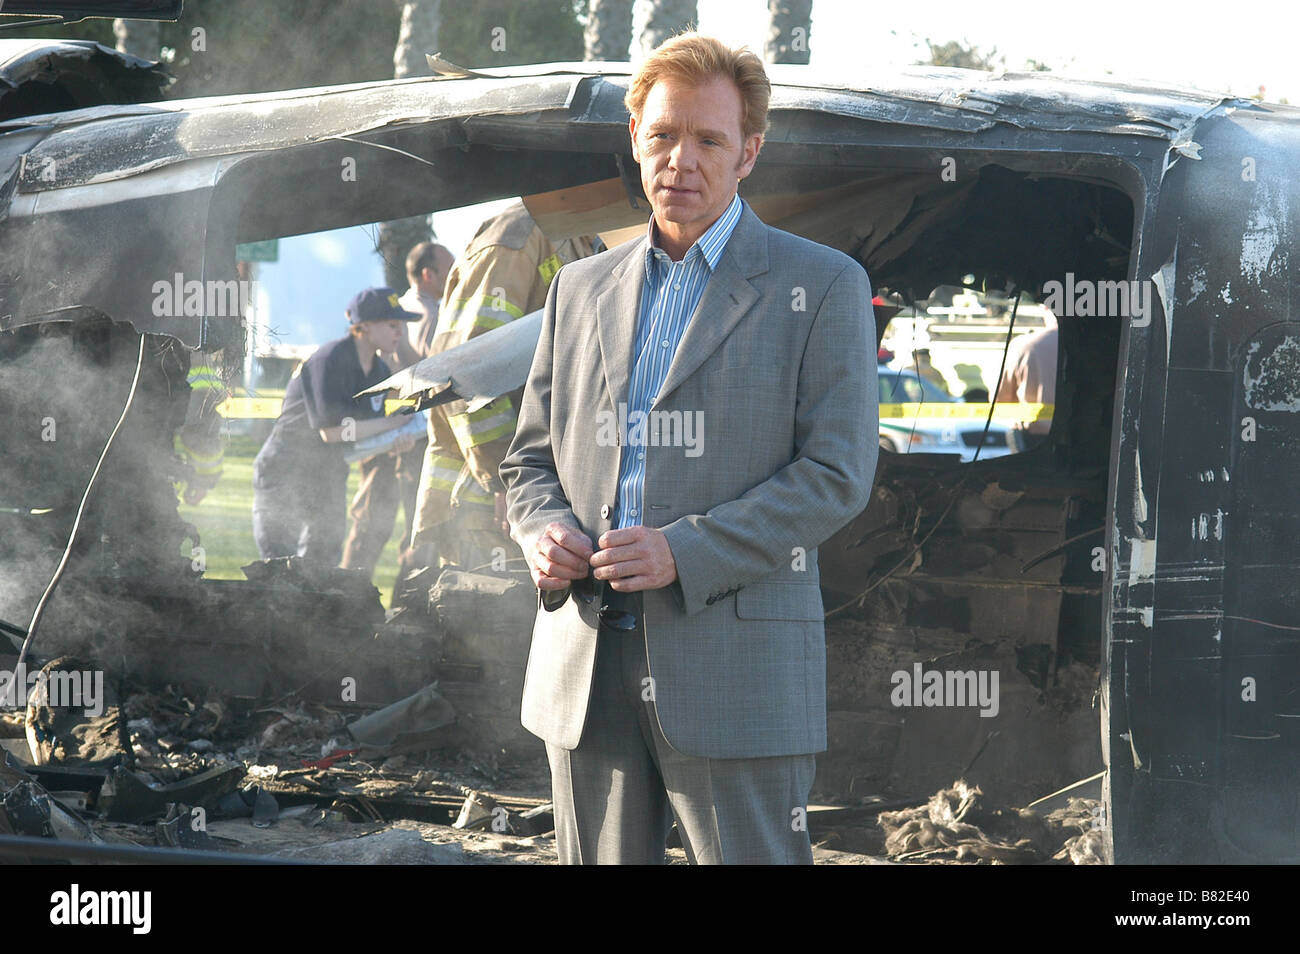 CSI: Miami  TV Series 2002-???? 2002 Season 1 - Ashes to Ashes David Caruso  Director: Bryan Spicer Created by Anthony - Stock Image